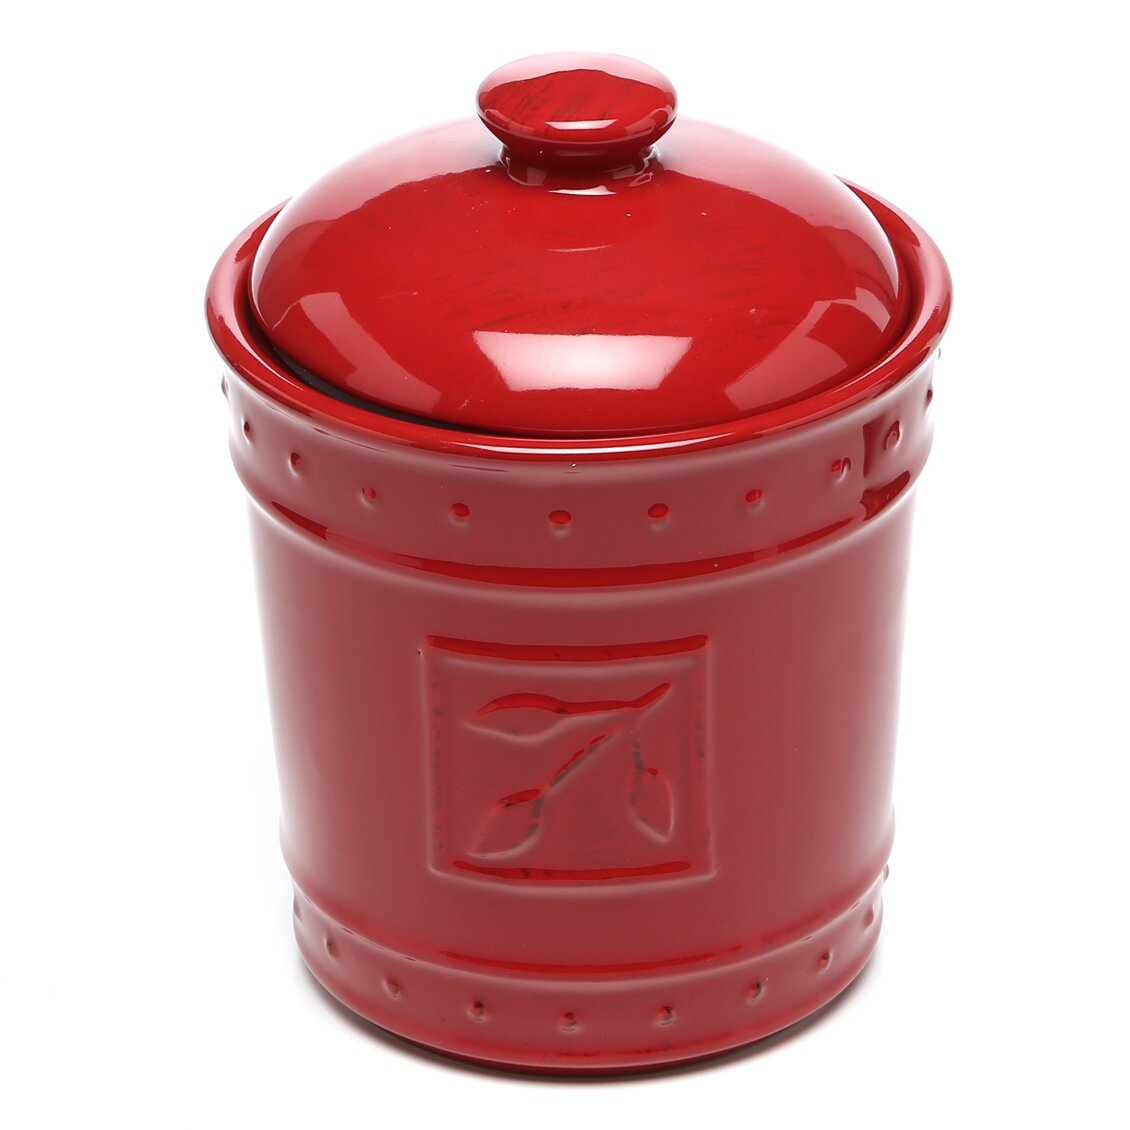 il fullxfull263081275 red kitchen cannisters besense co red